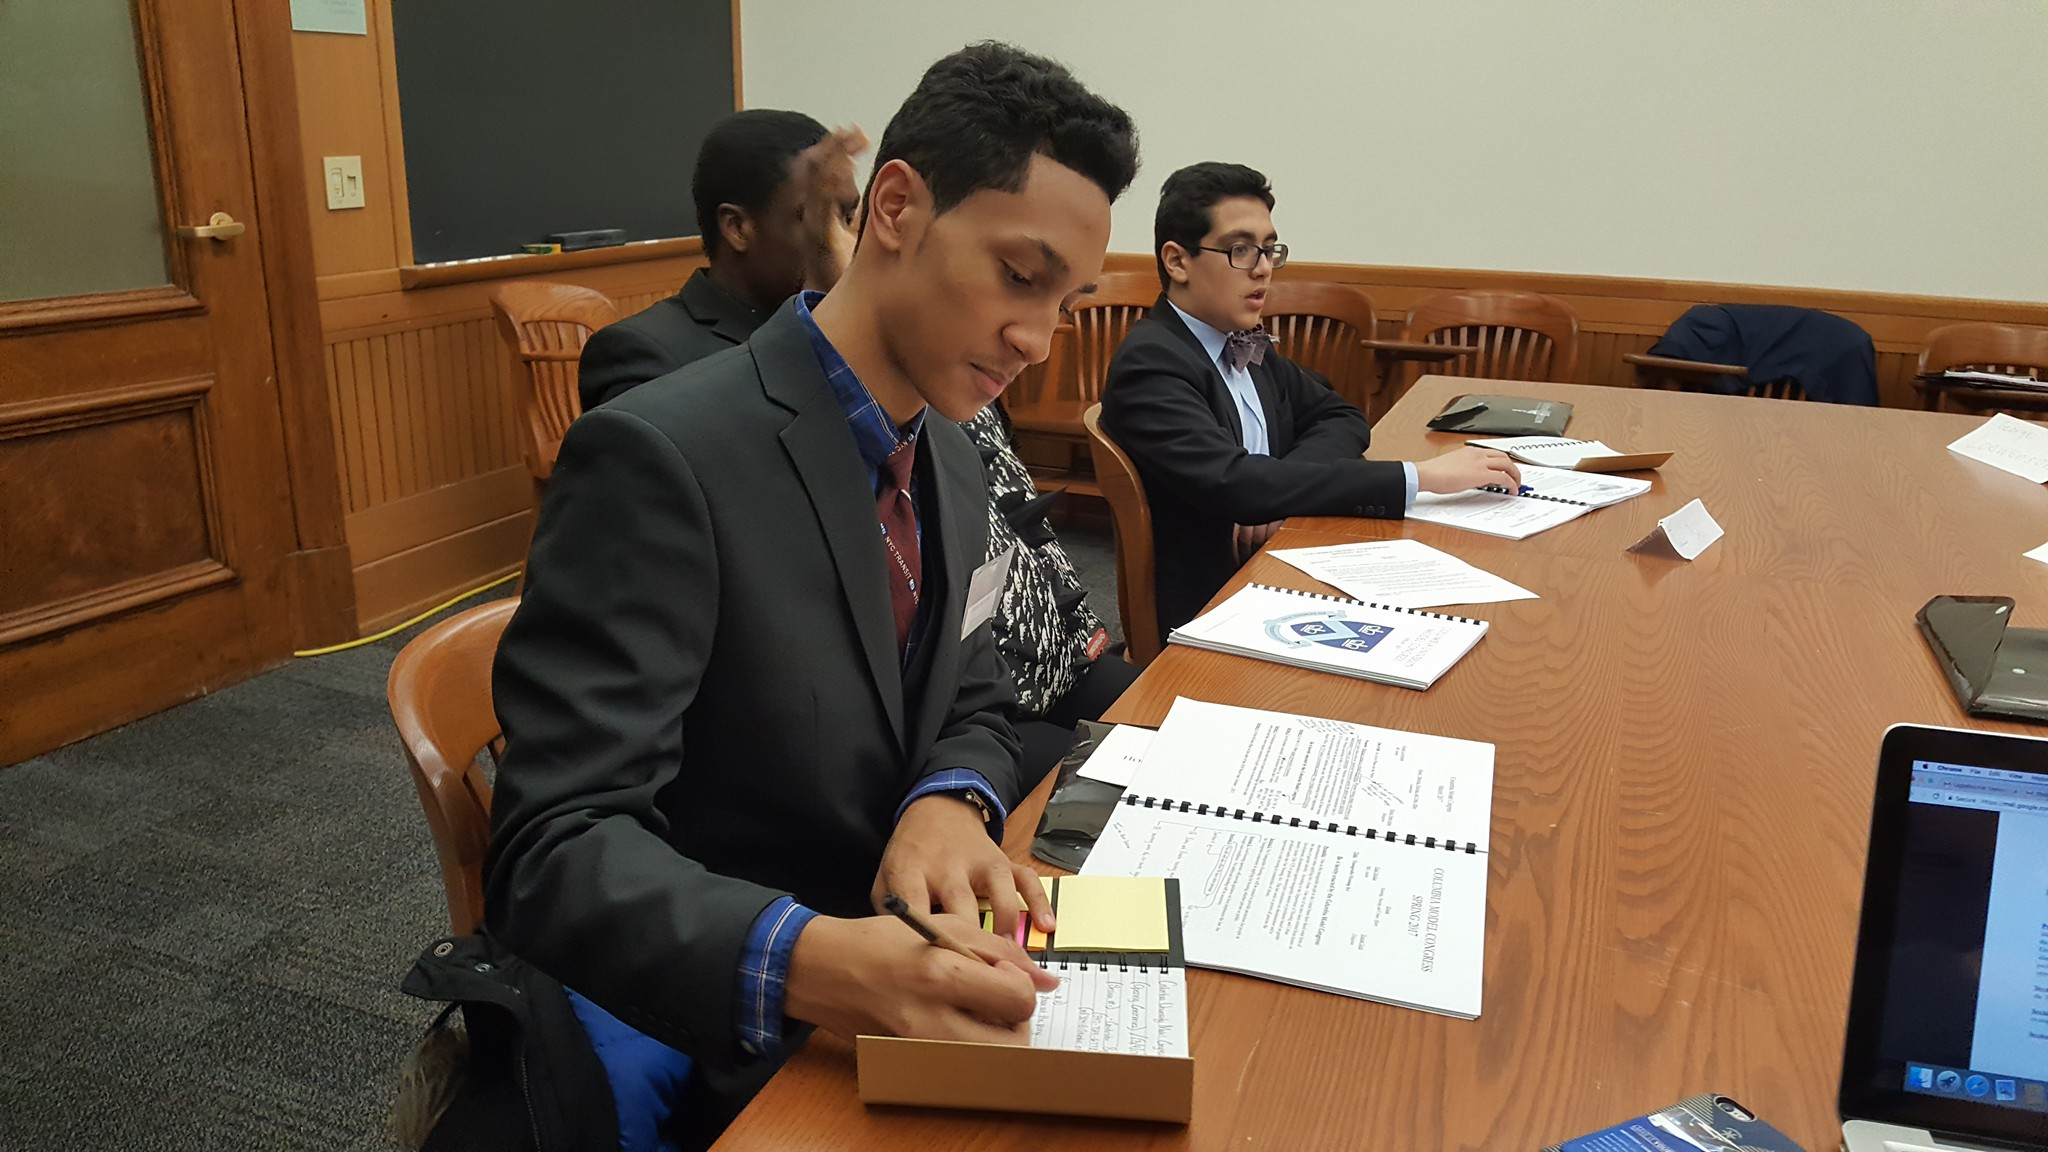 students in a legal setting